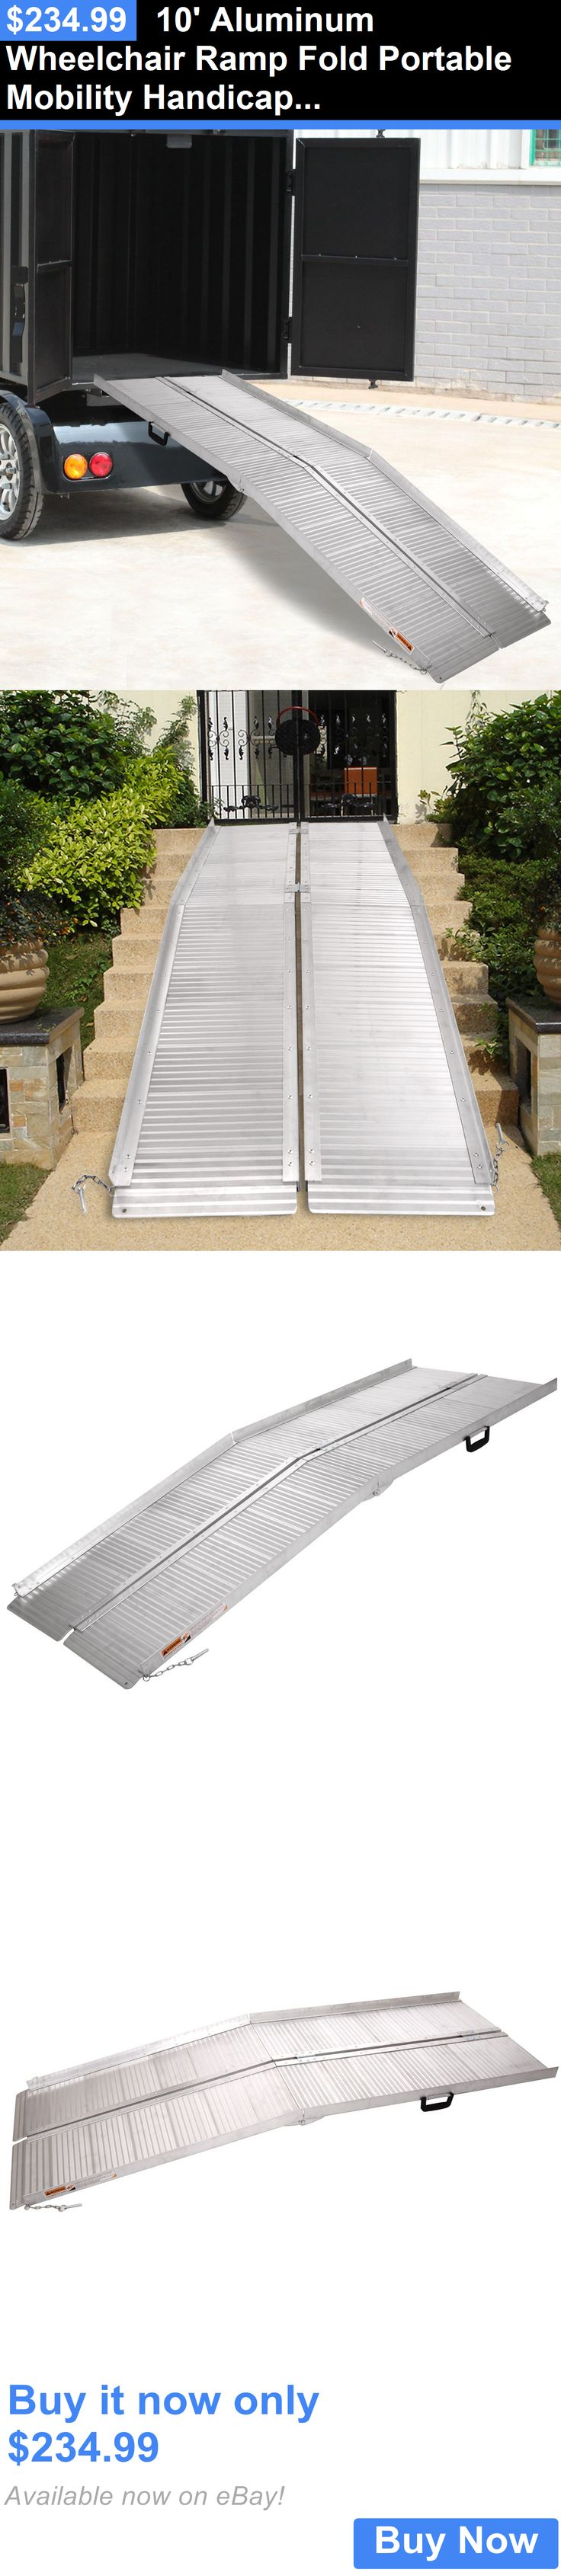 Access Ramps: 10 Aluminum Wheelchair Ramp Fold Portable Mobility Handicap Suitcase Threshold BUY IT NOW ONLY: $234.99